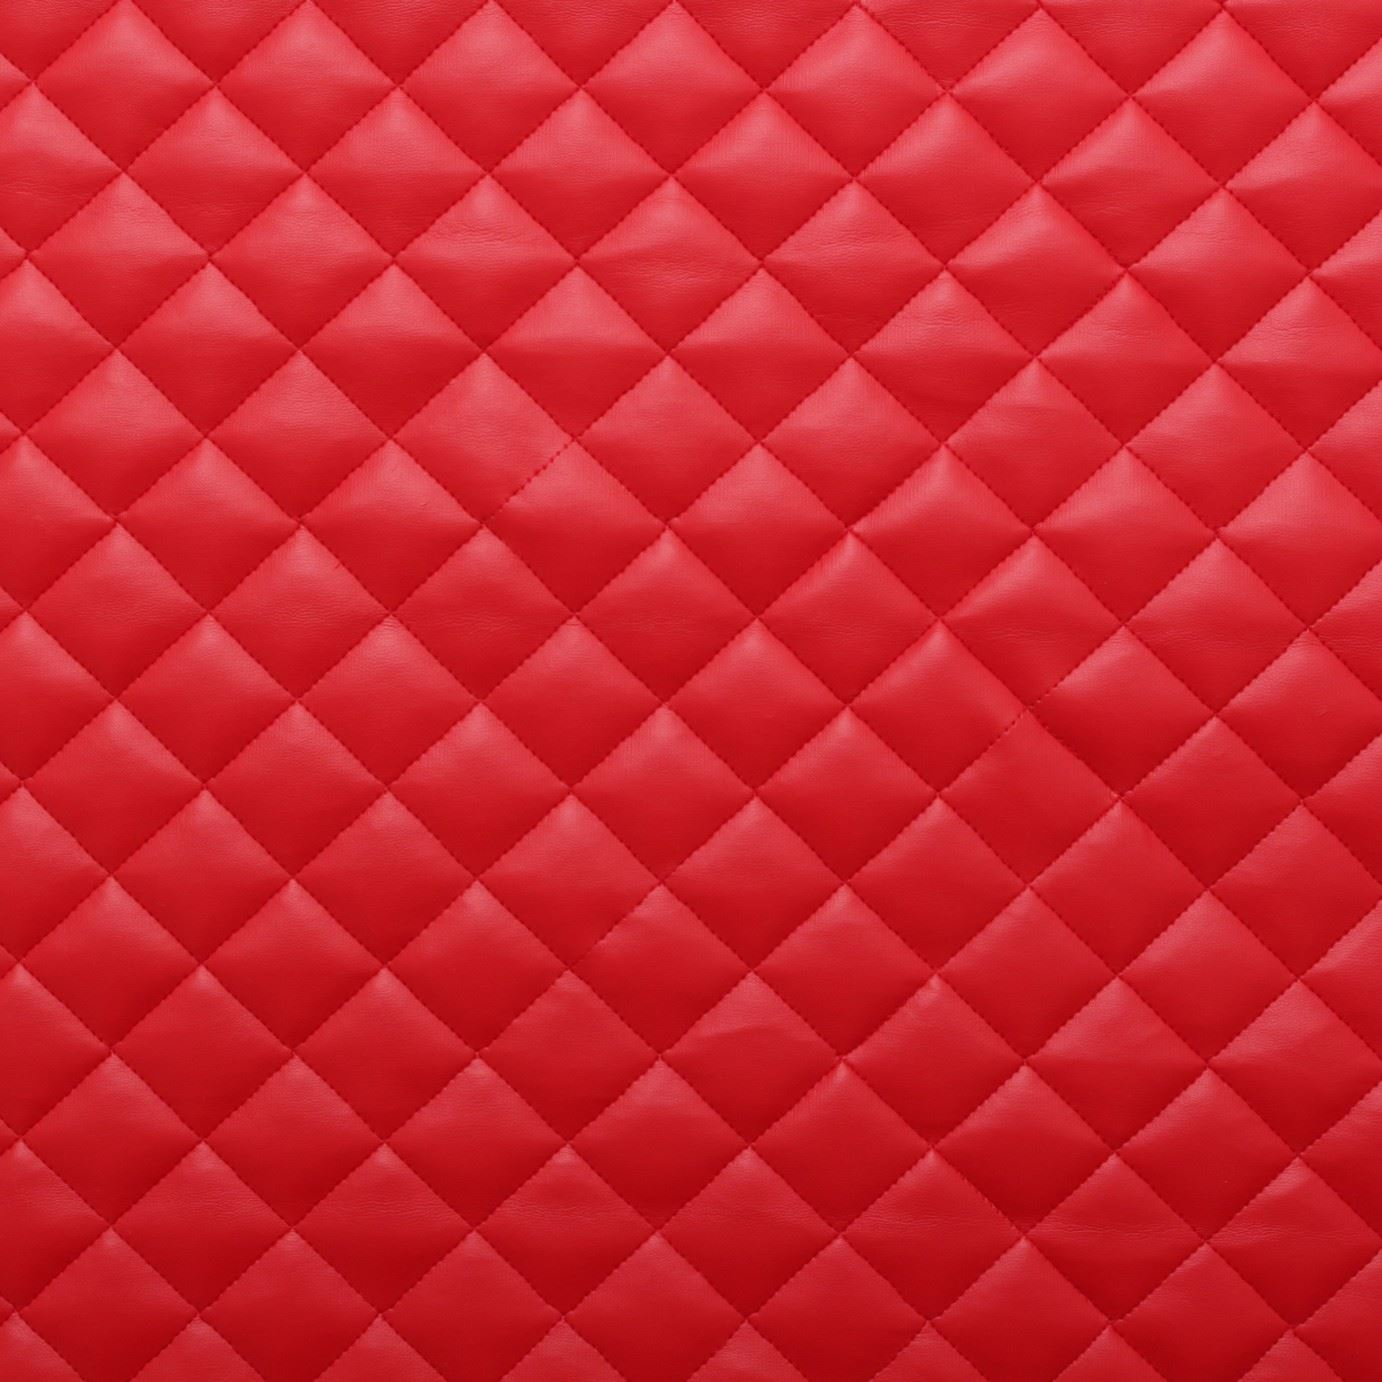 Leather cushion texture - Quilted Leather Diamond Padded Cushion Faux Leather